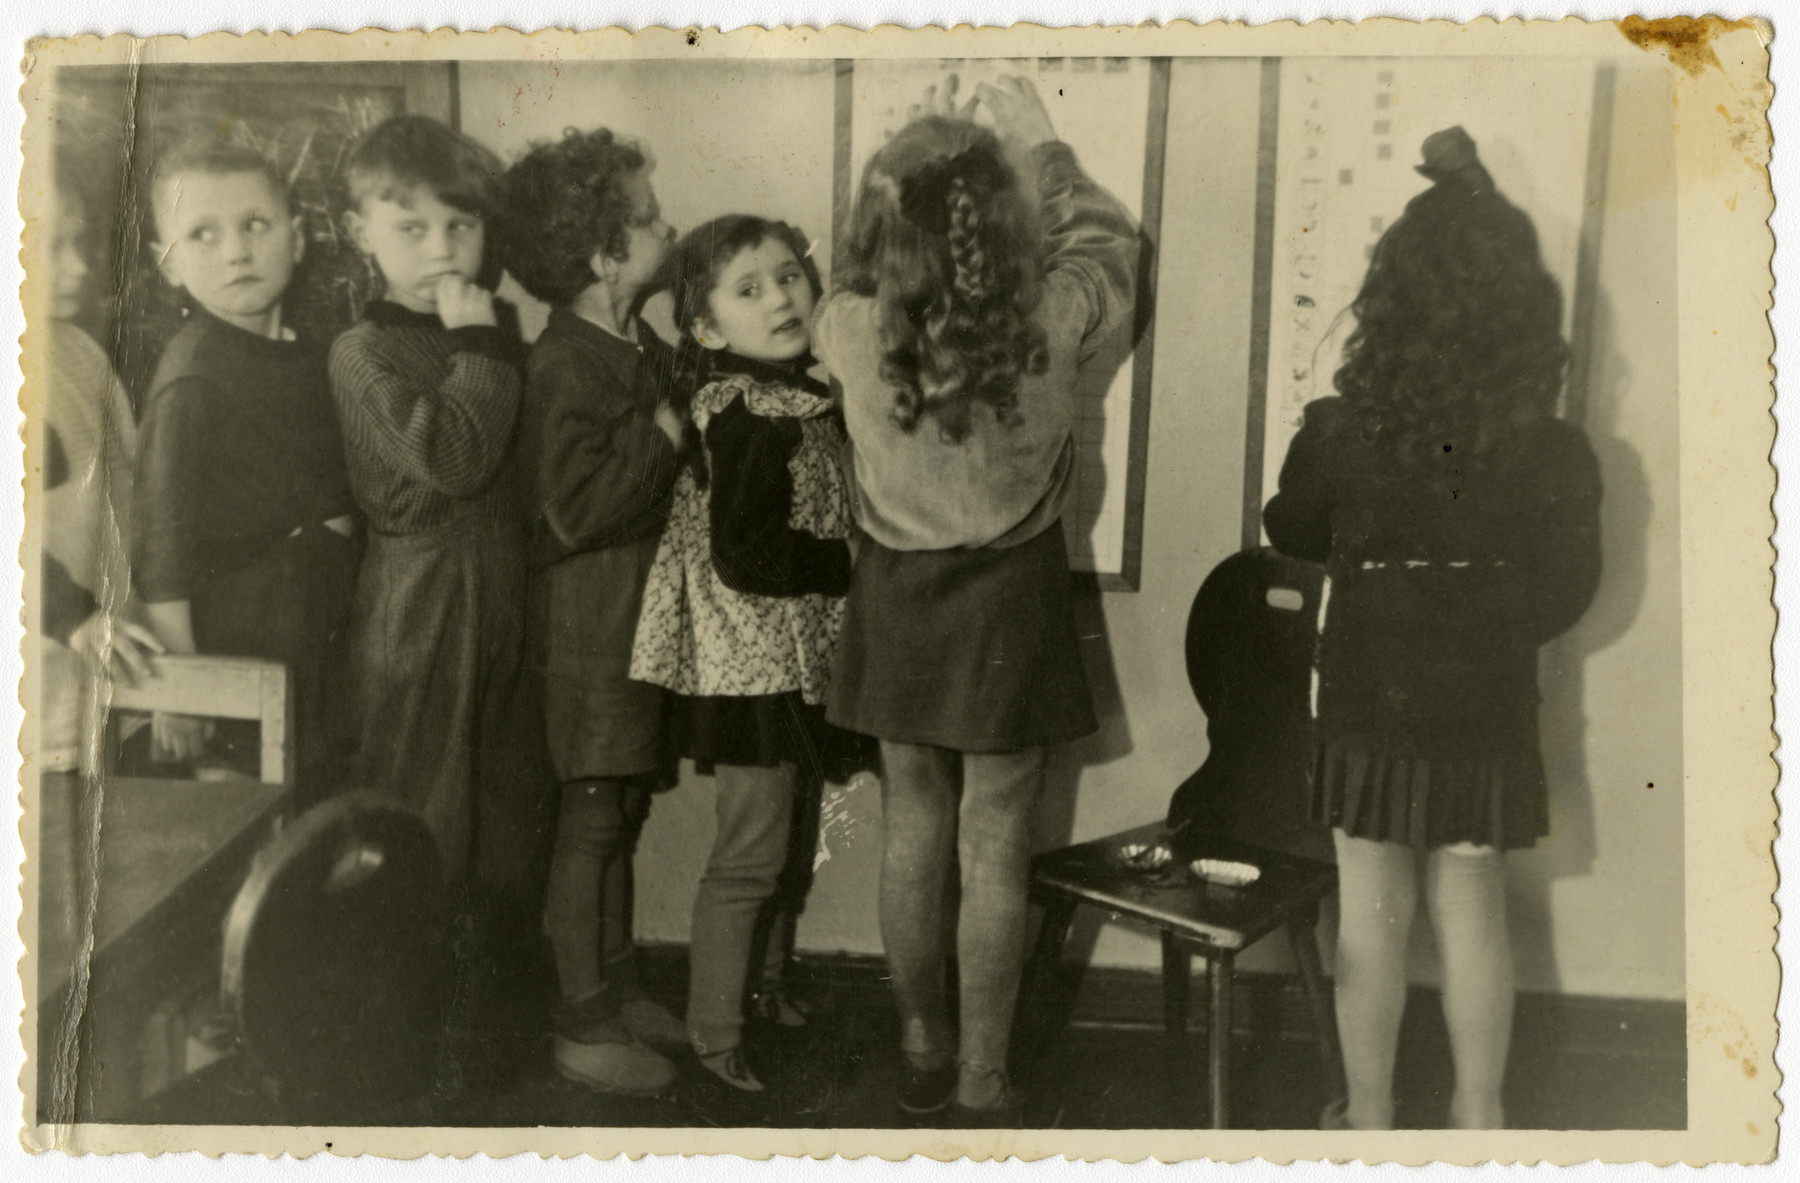 Children of a Jewish kindergarten in Szczecin after the war.   Pictured first from right may be Dziunia Gorysznik.